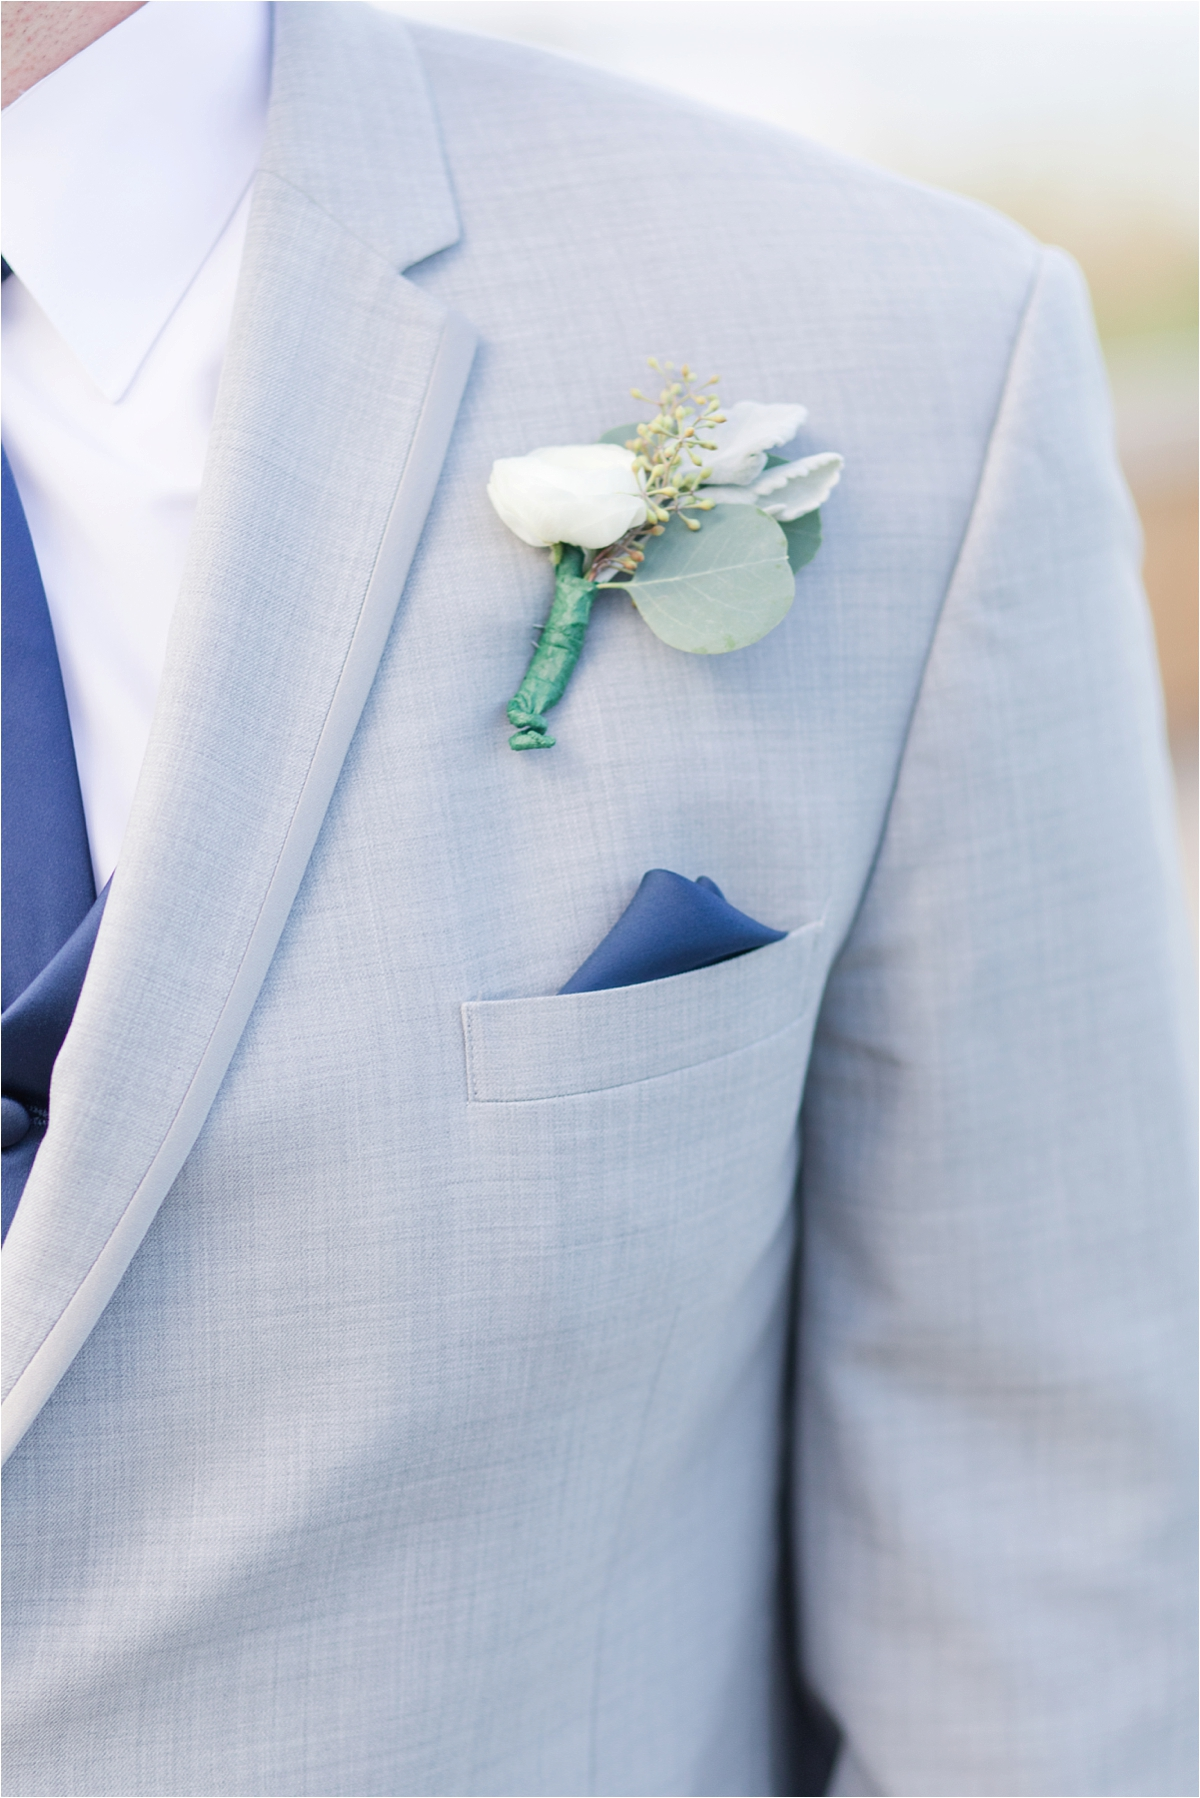 dainty-corsage-navy-pocket-hankerchief-wedding-groom-light-blue-suit-baby's-babys-breath